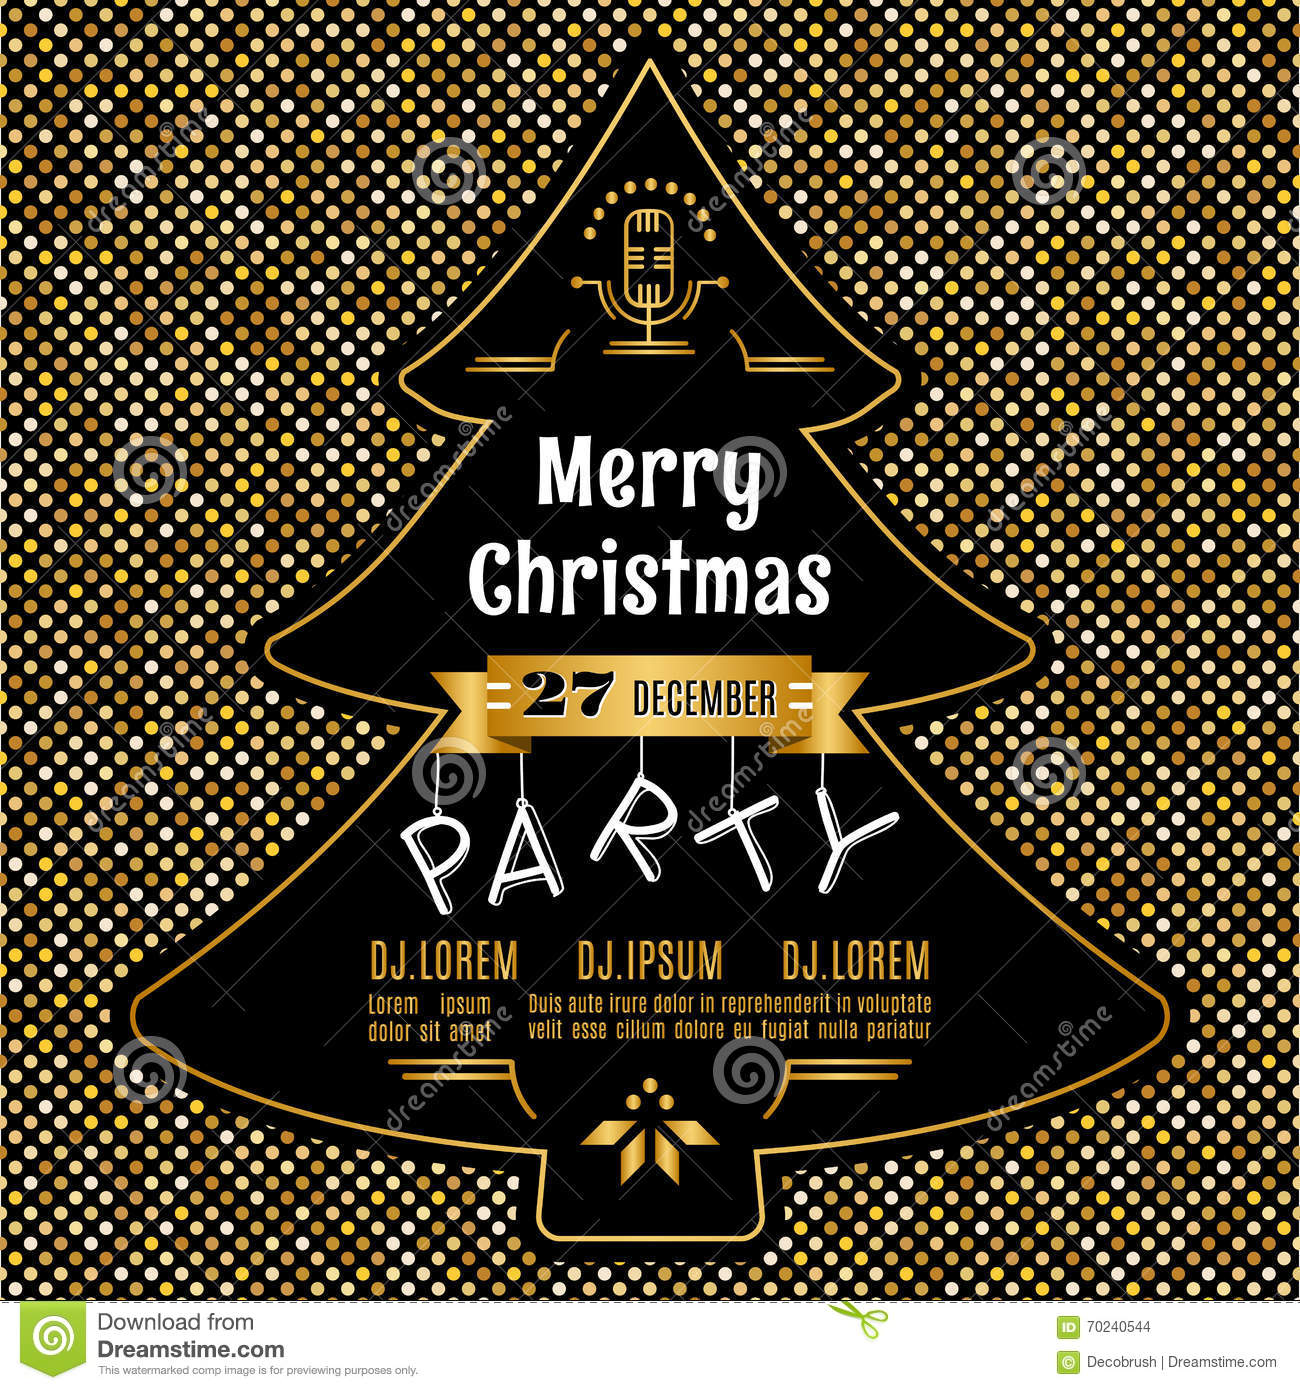 christmas party poster vector abstract gold and black background christmas party poster vector abstract gold and black background